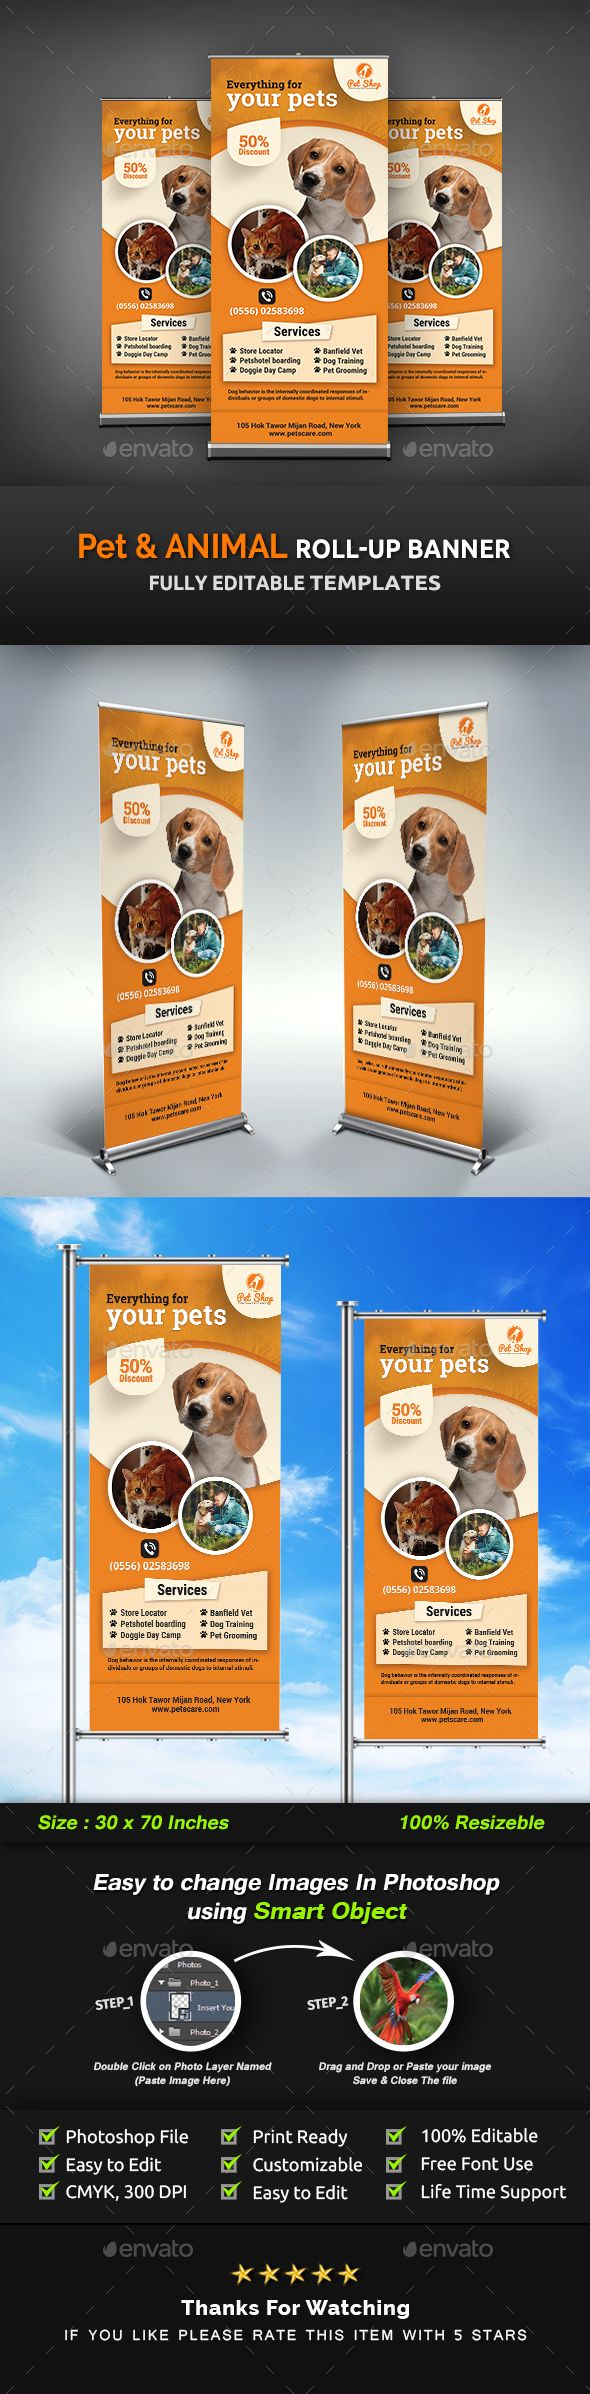 Pet RollUp Banner | Animal RollUp Banner Templates #professional rollup banner #...